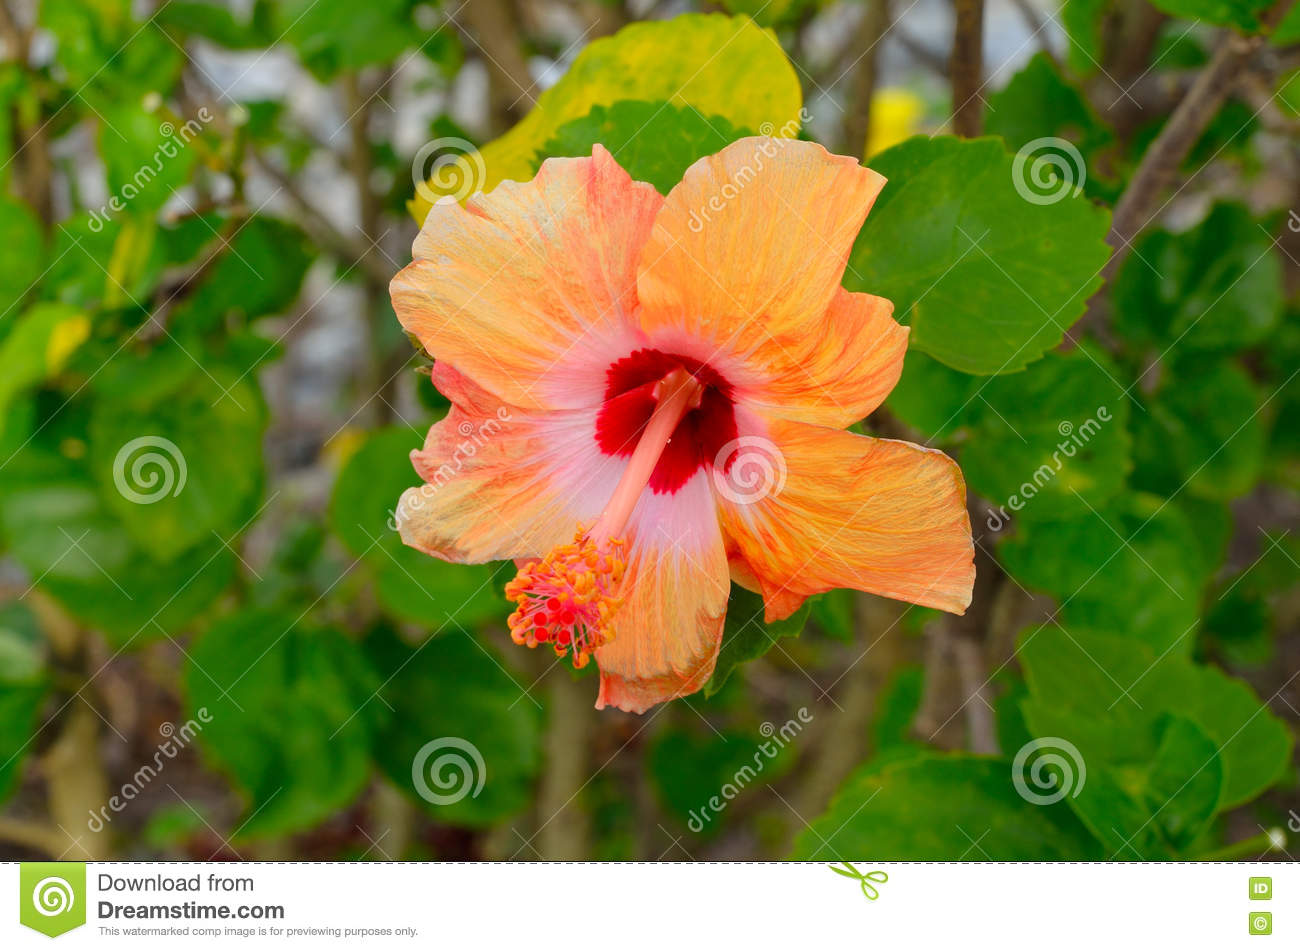 Hibiscus flower scientific name gallery flower wallpaper hd orange chinese hibiscus flower stock photo image of latin orange chinese hibiscus flower latin arboretum izmirmasajfo izmirmasajfo